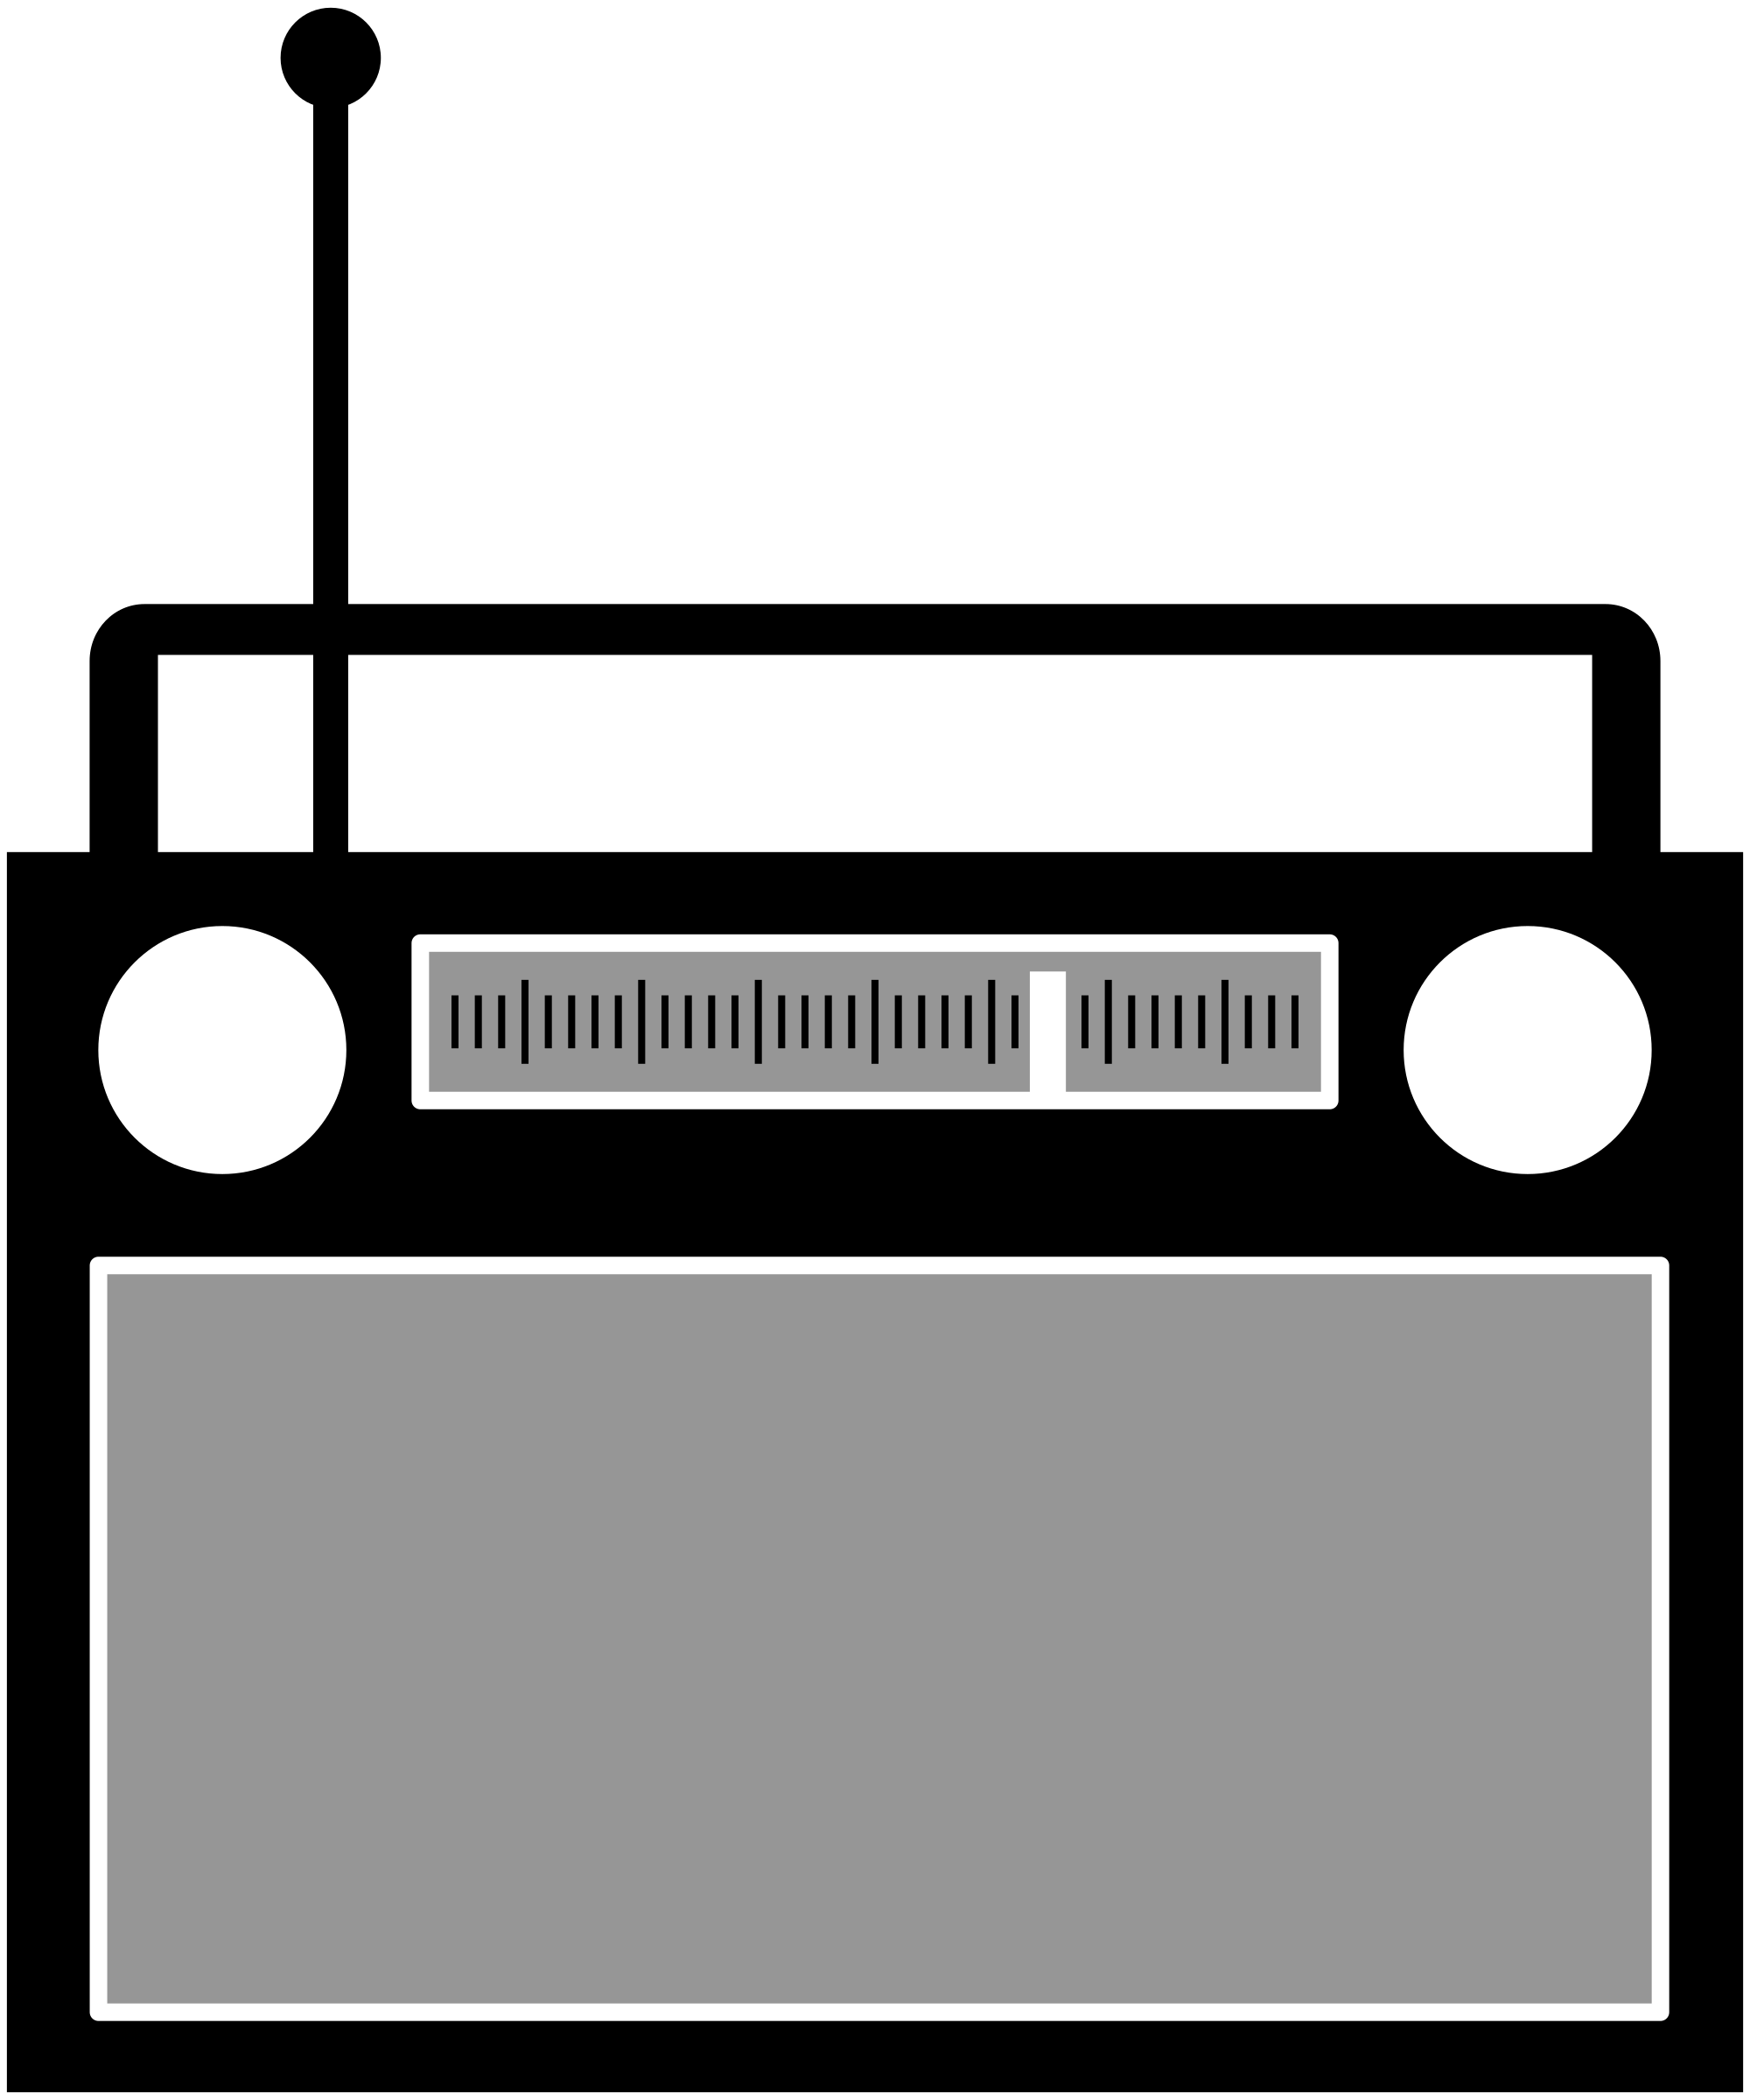 Simple radio. Electronics clipart high tech